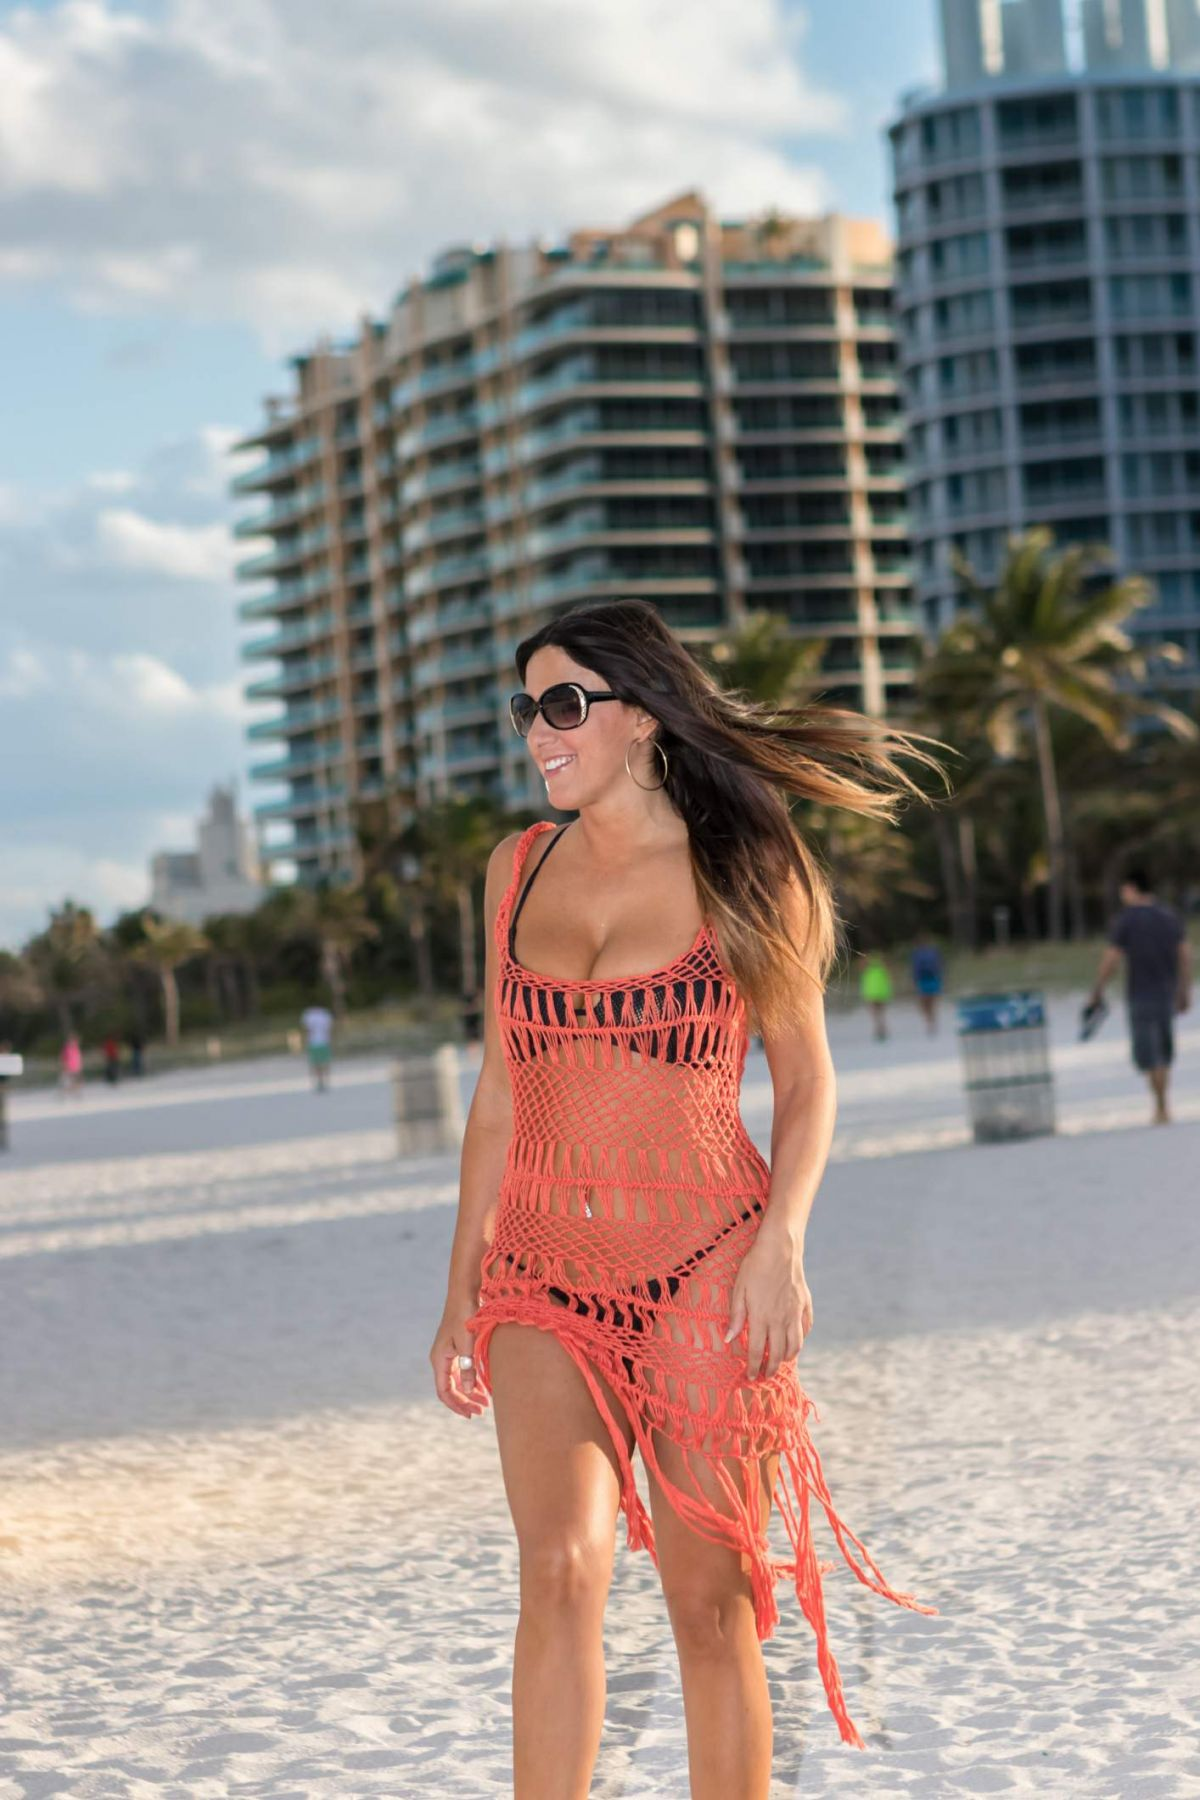 Claudia Romani in Bikini on South Beach in Miami 2 Pic 7 of 35